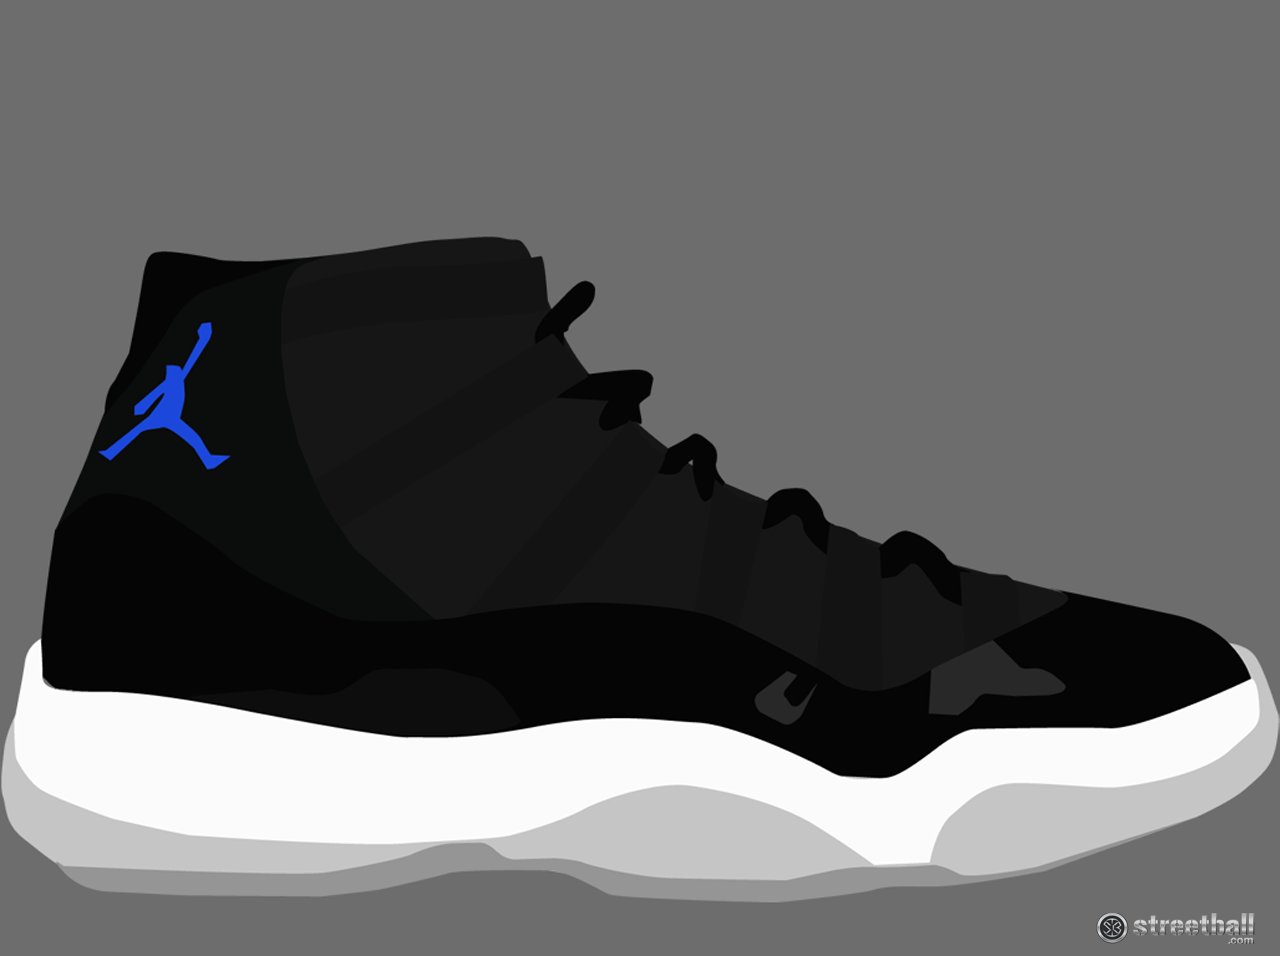 Jordan Shoe With Designs